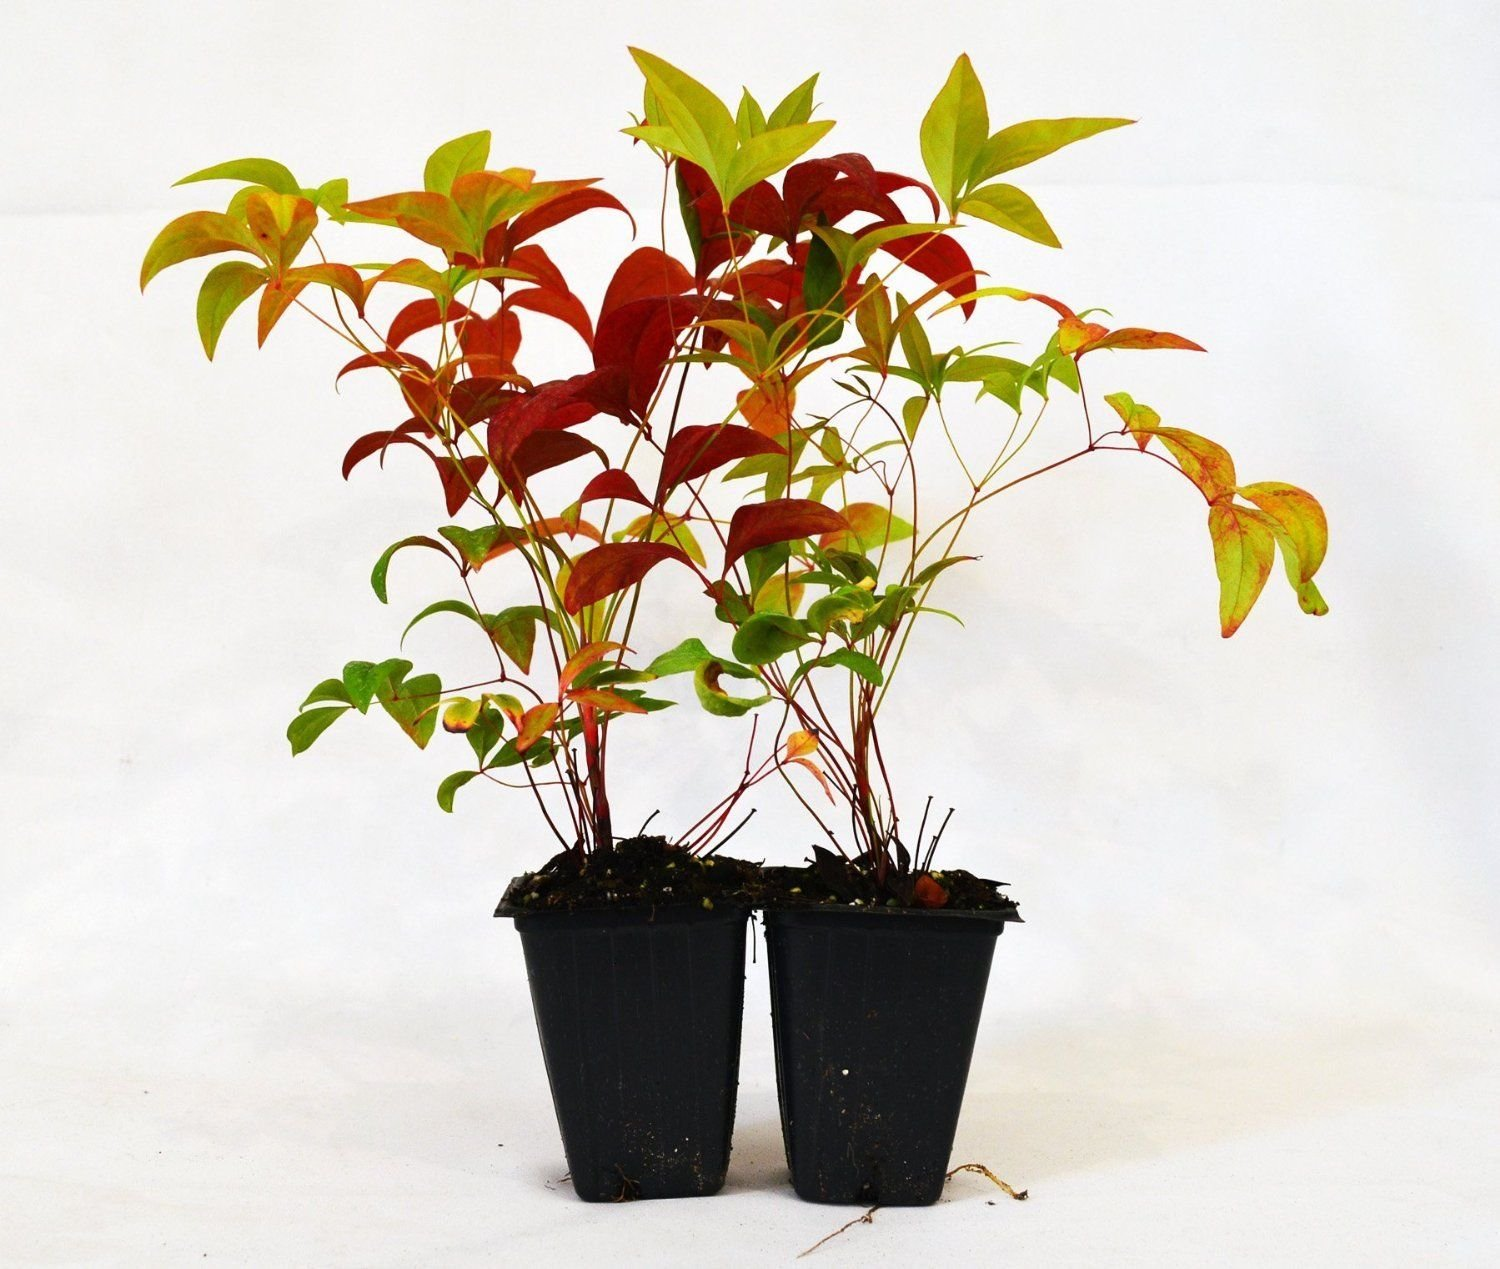 Nandina Domestica Fire Power (Heavenly Bamboo) - 2 Pack Hardy Shrub Mature Green